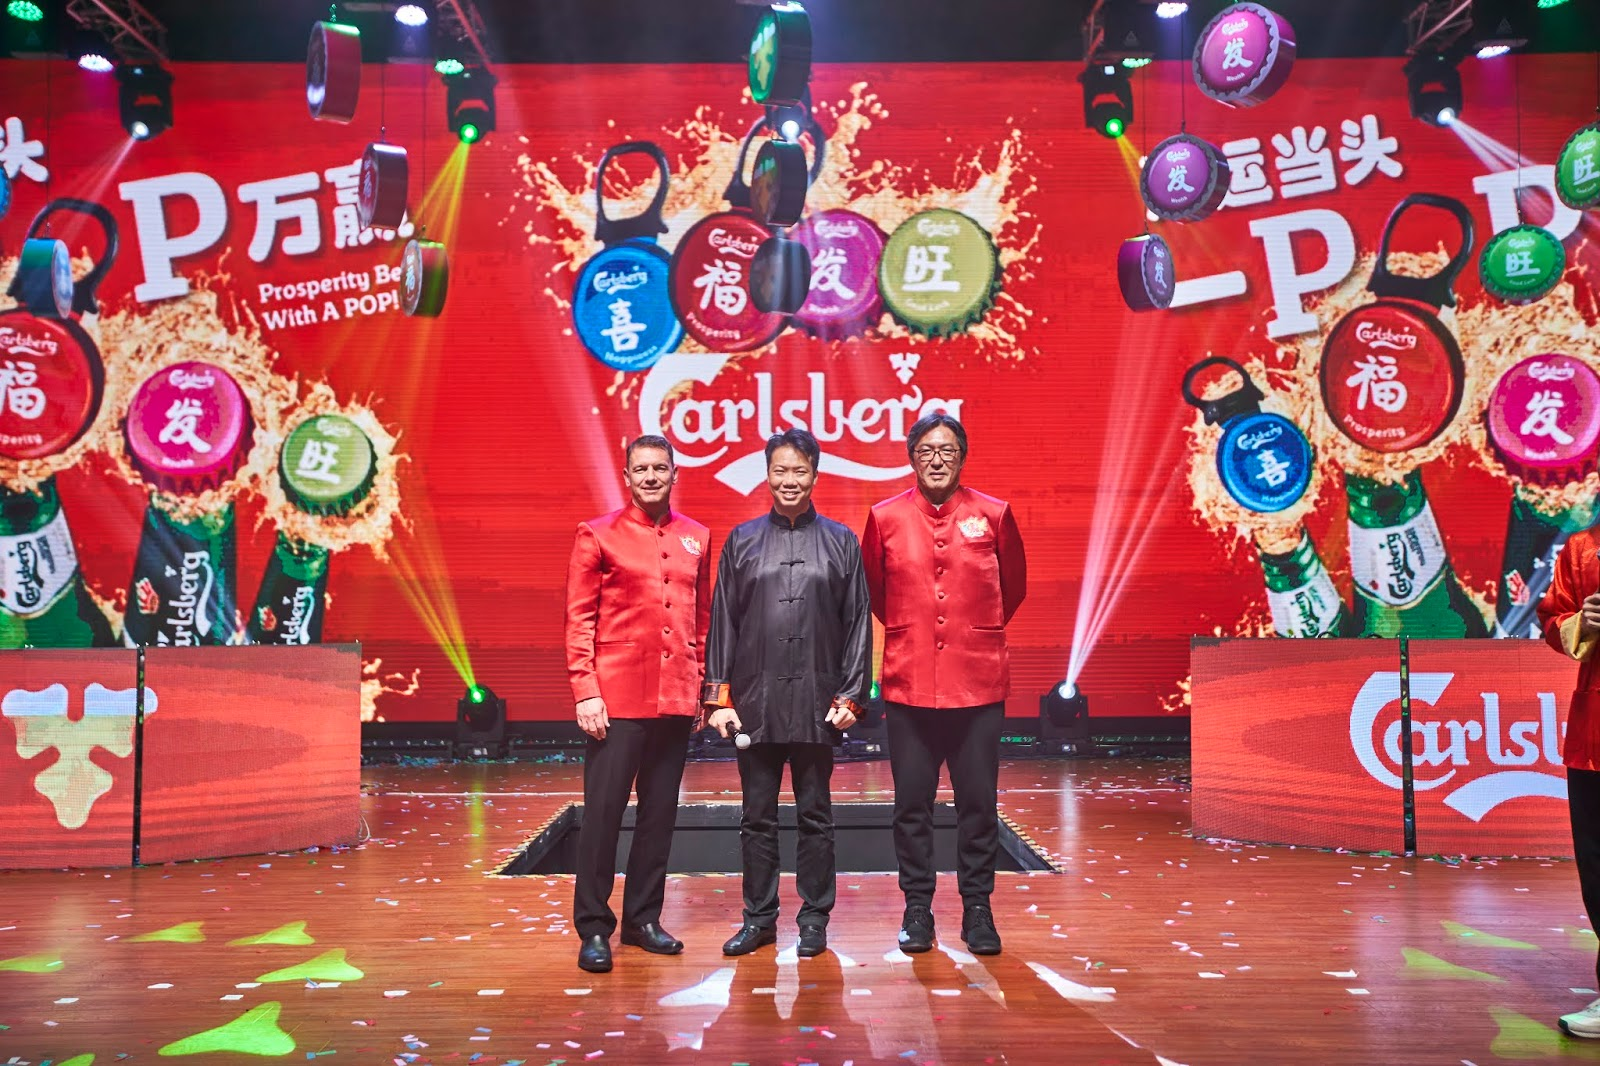 Over 3,000 beer lovers win BIG ahead of CNY with Carlsberg